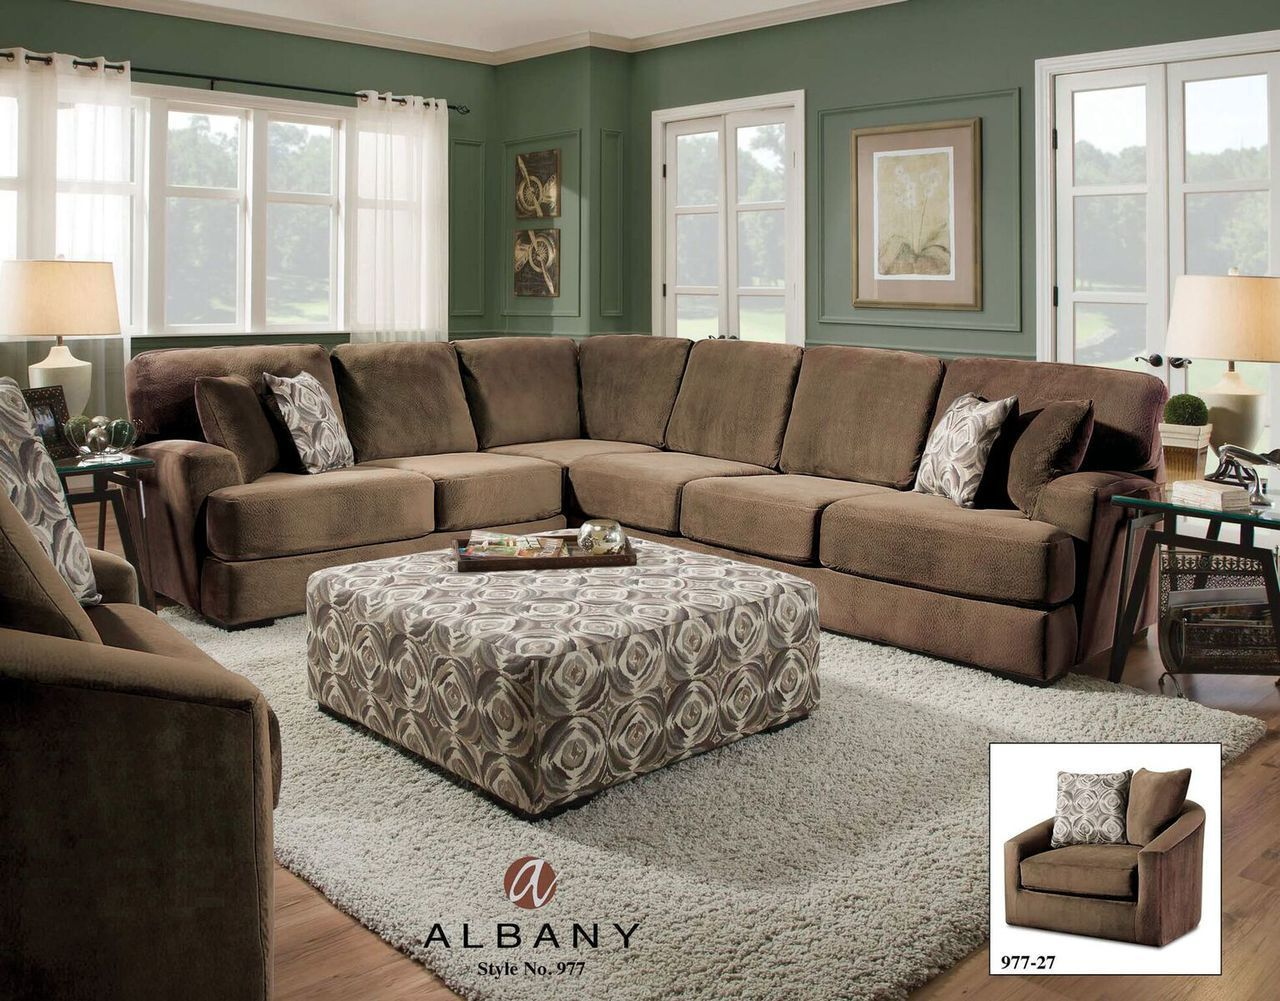 Argos Chocolate Sectional By Albany Lowest Price Transitional Sectional Sofas Sectional Sofa Furniture